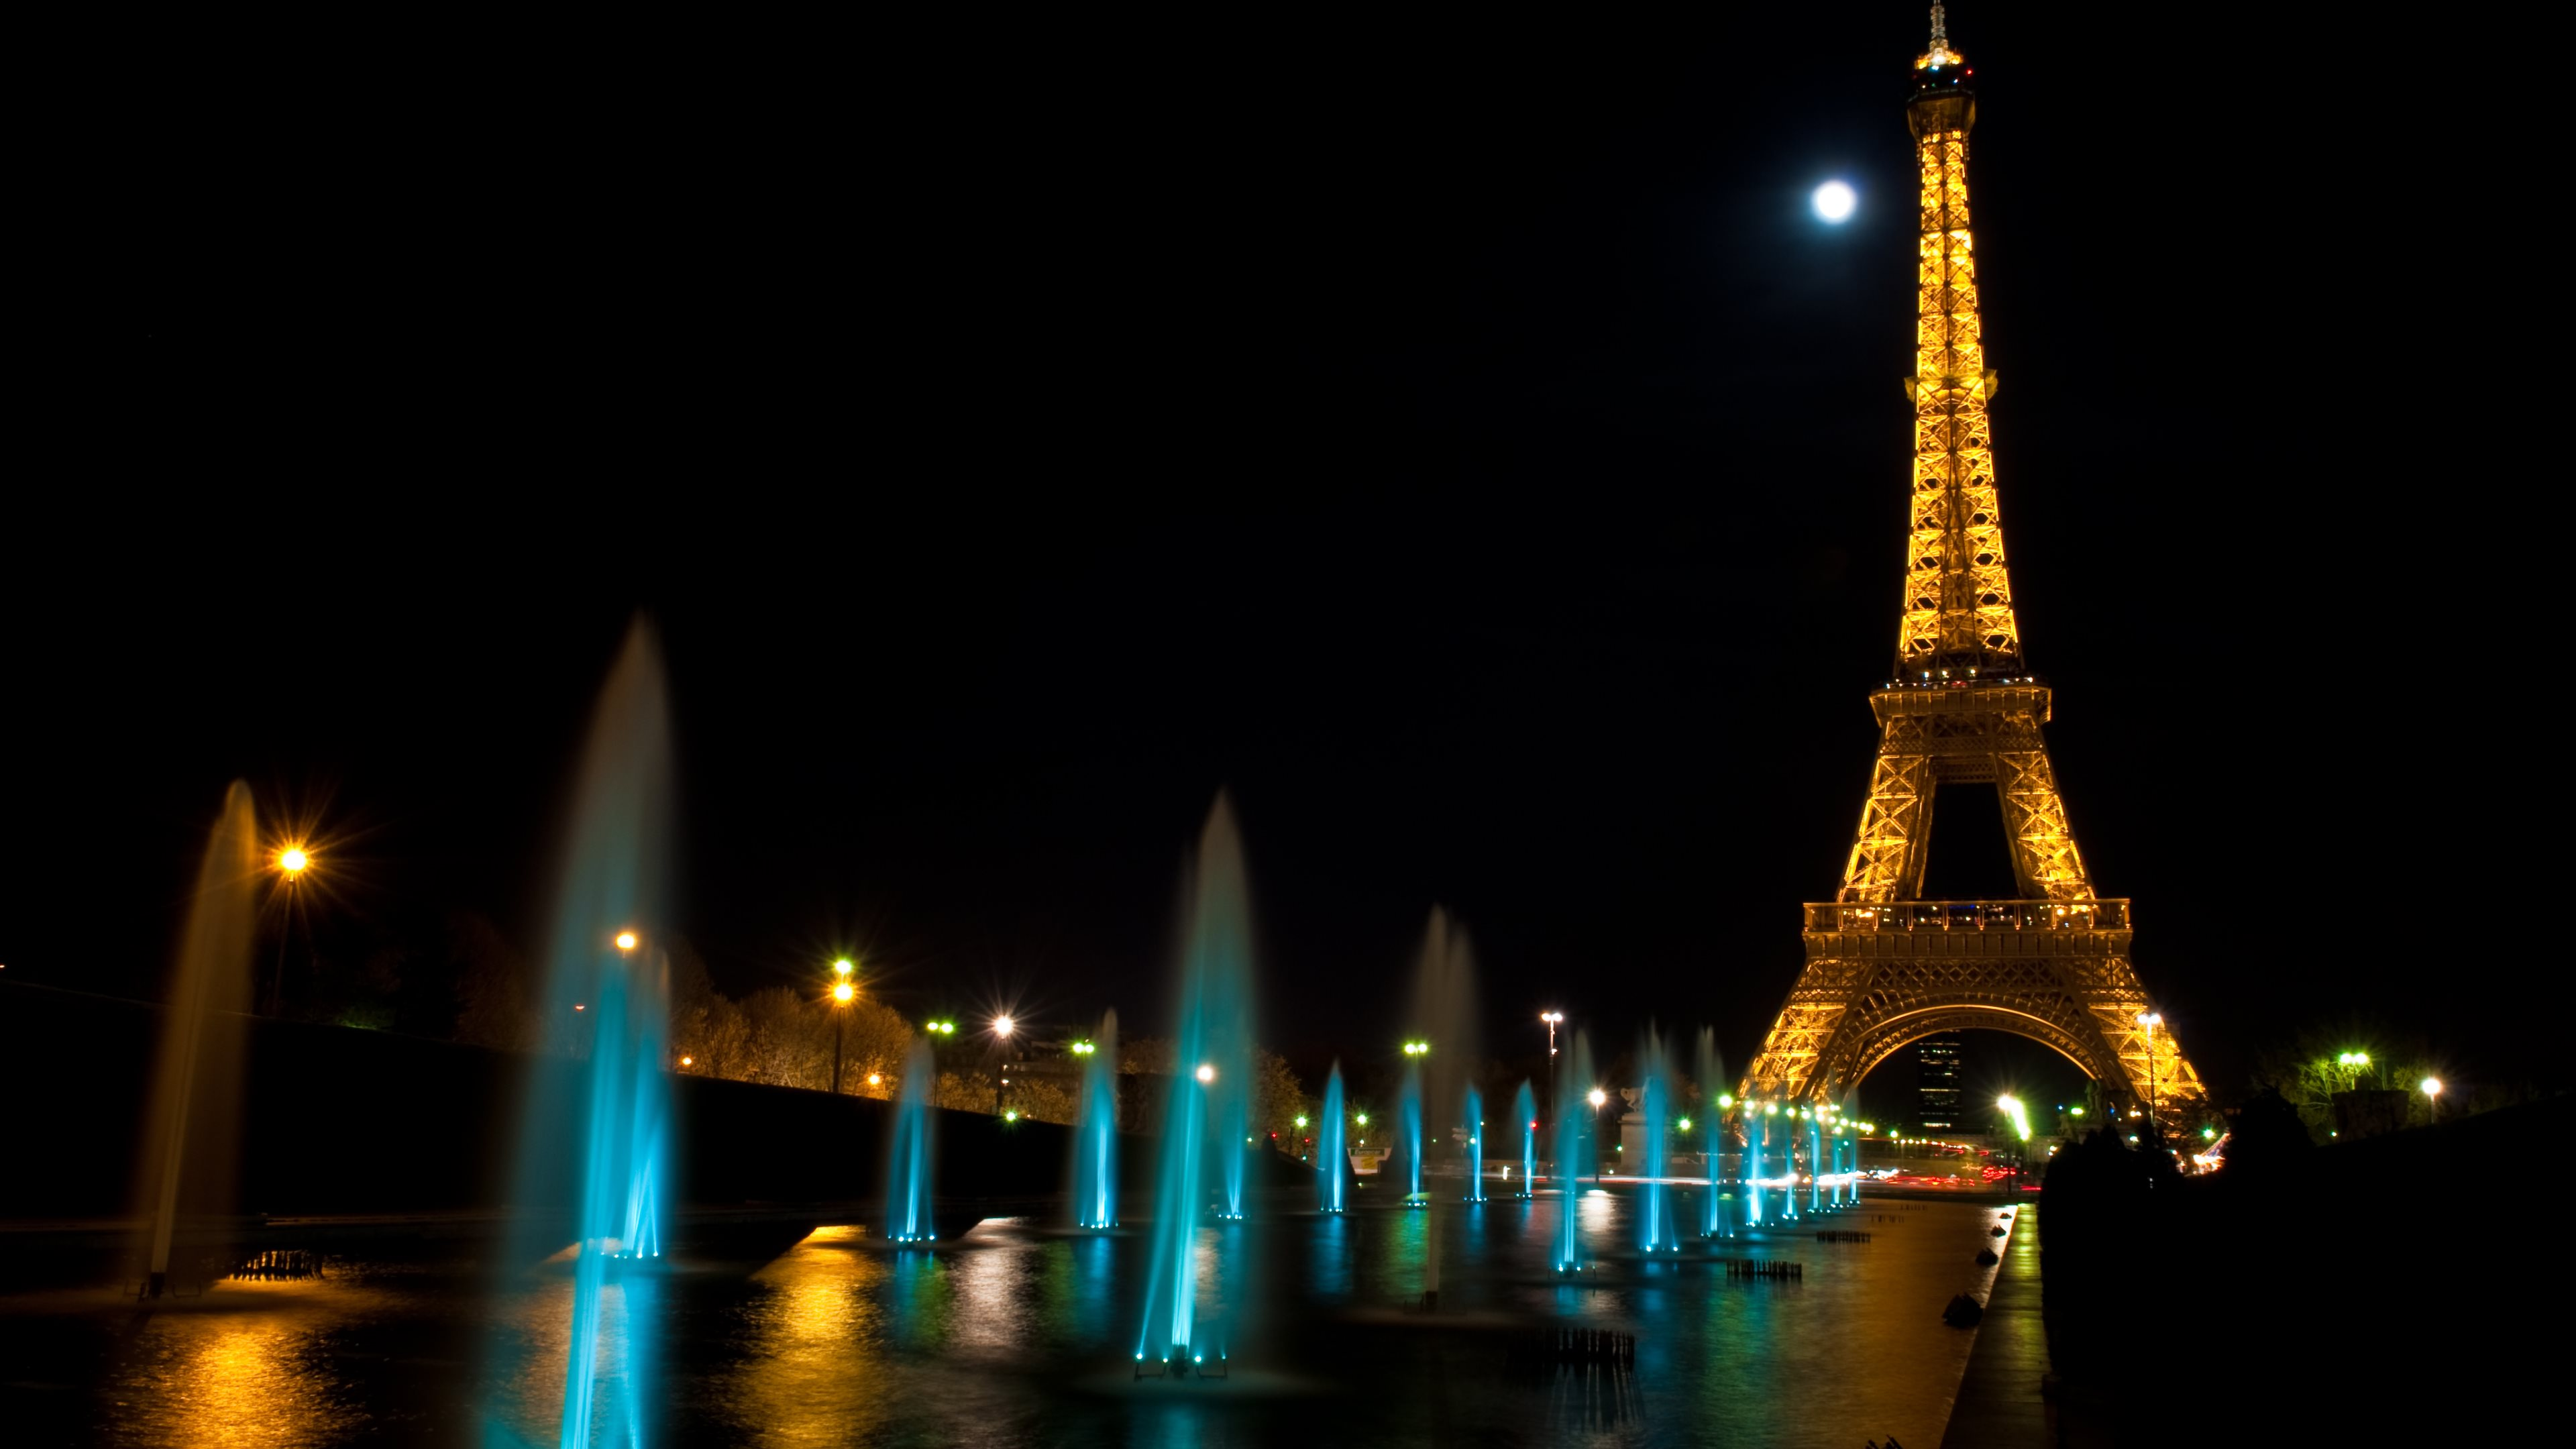 Paris at Night Tour Eiffel Wallpapers HD Wallpapers 3840x2160